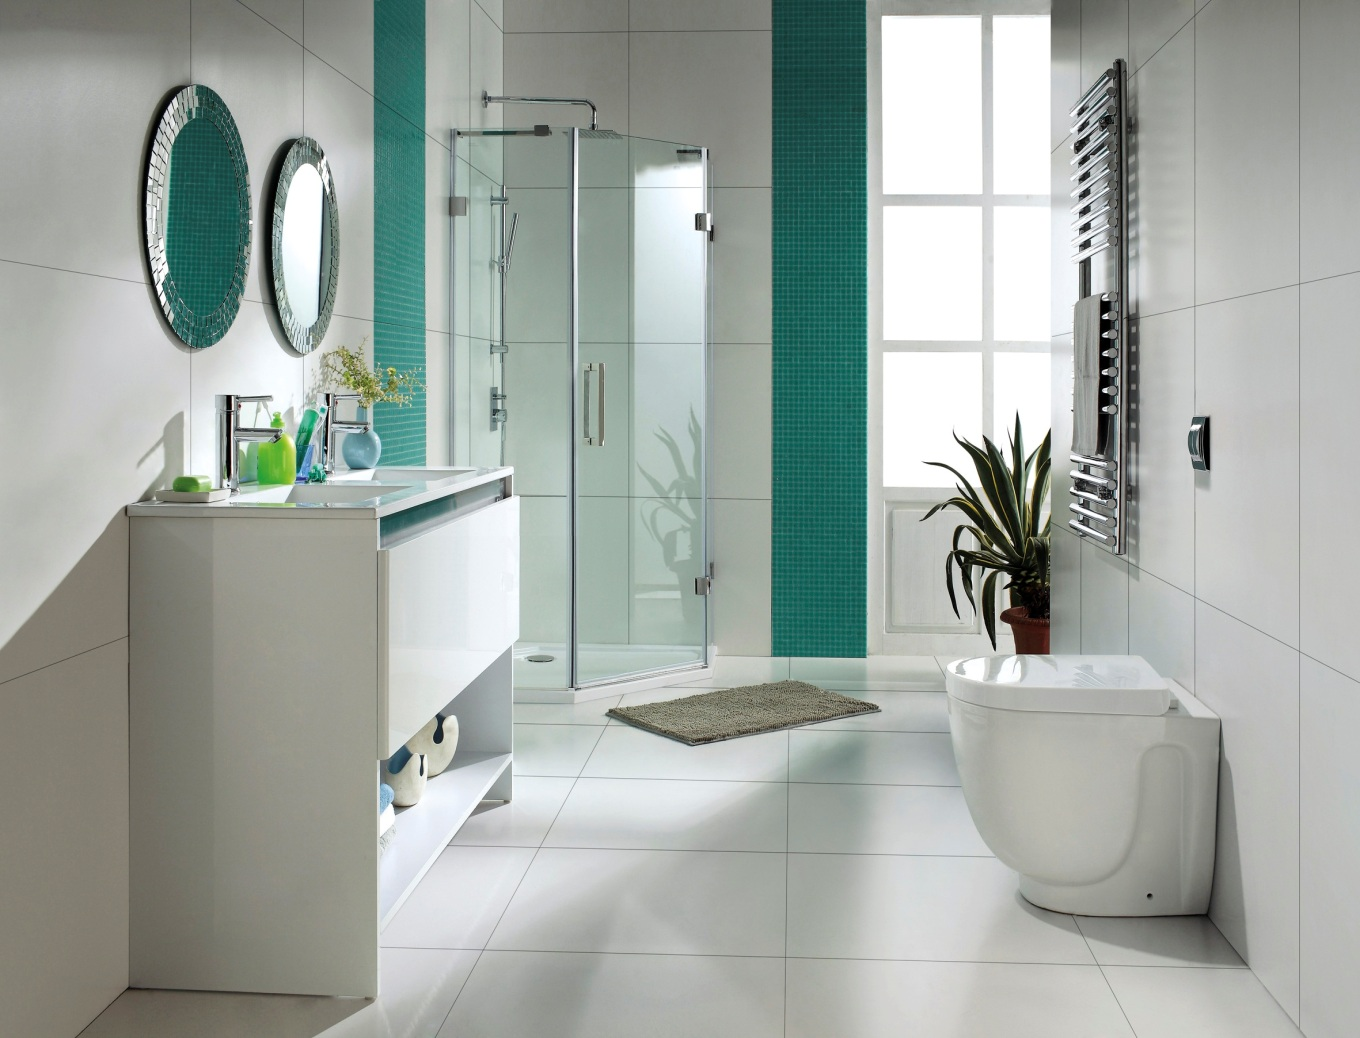 White bathroom decor ideas decor ideasdecor ideas for Pics of bathroom decor